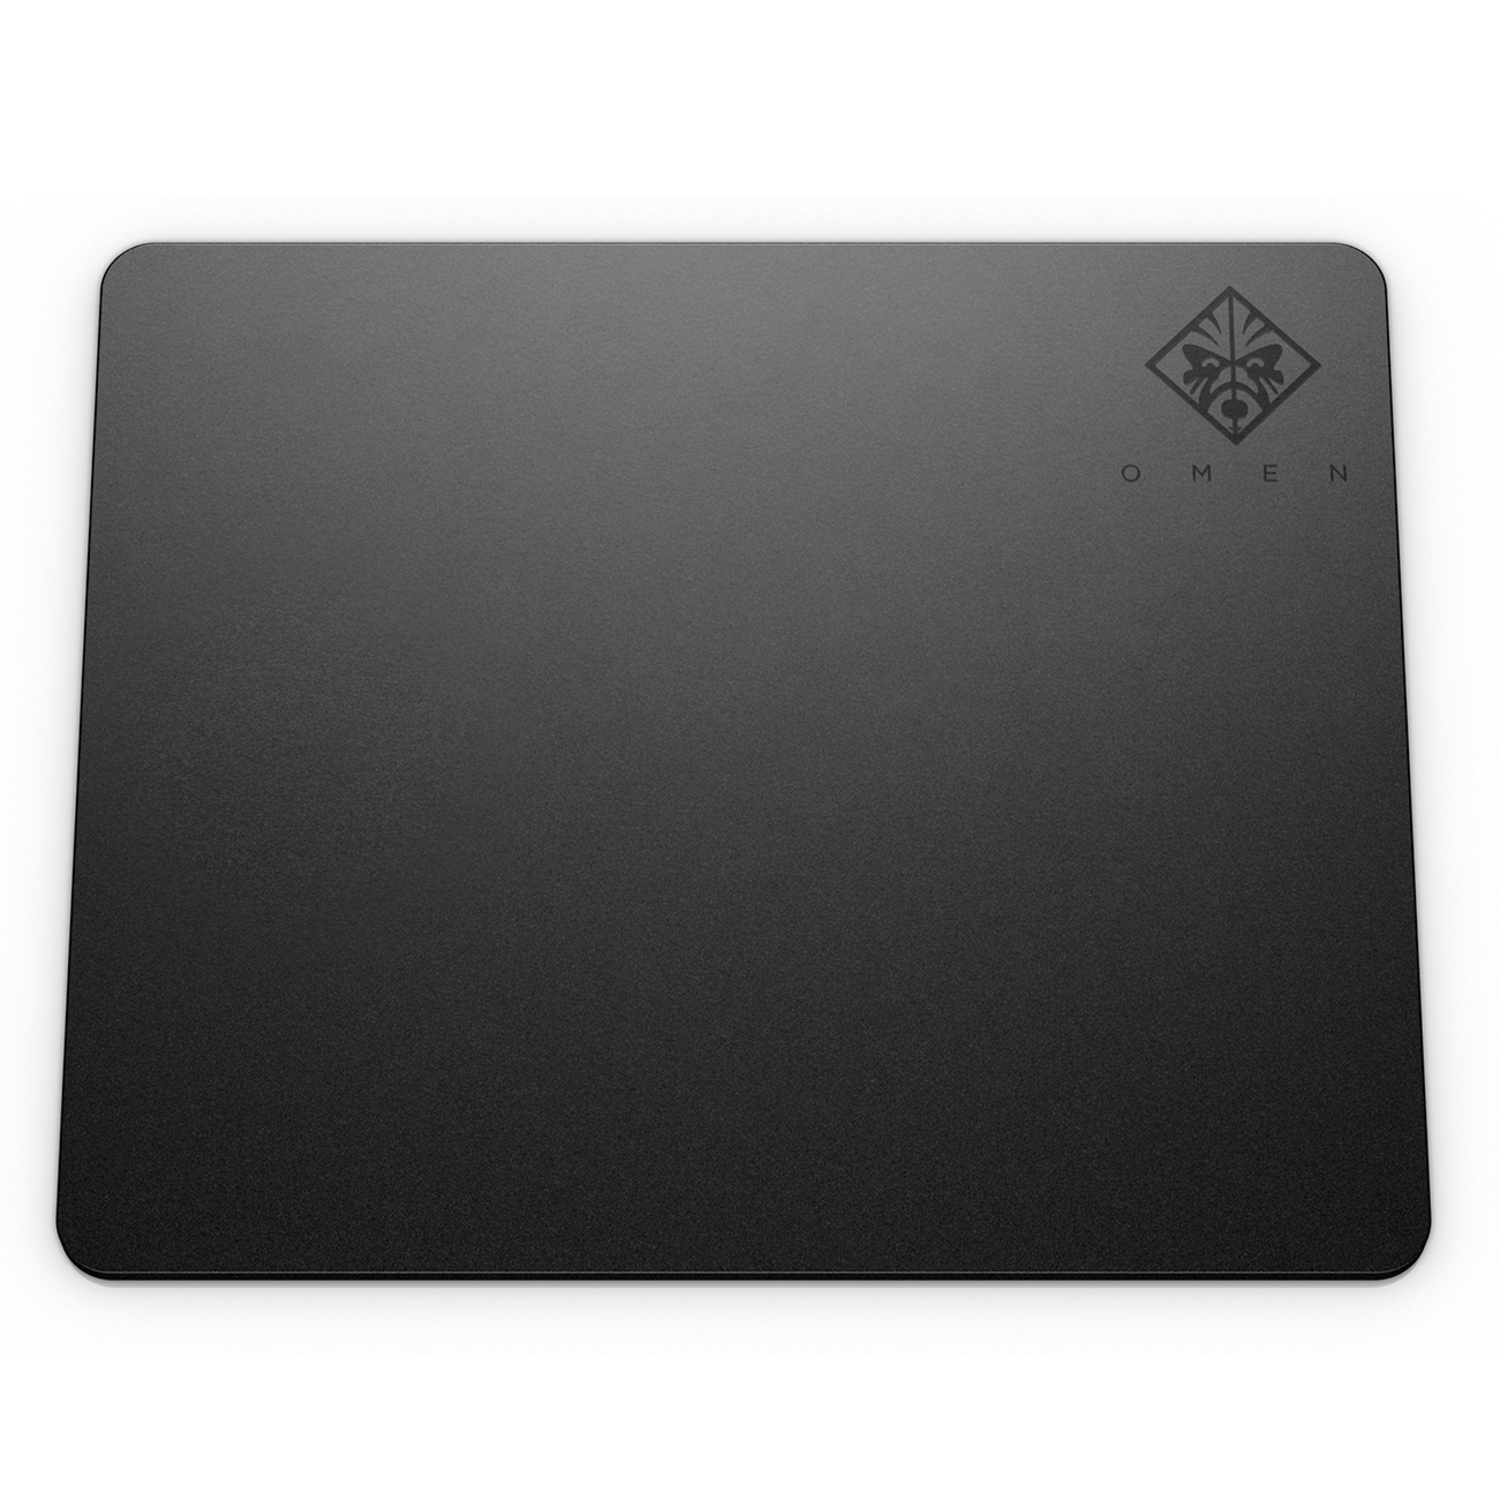 Hewlett Packard (HP) HP OMEN 100 (M) Mouse Pad